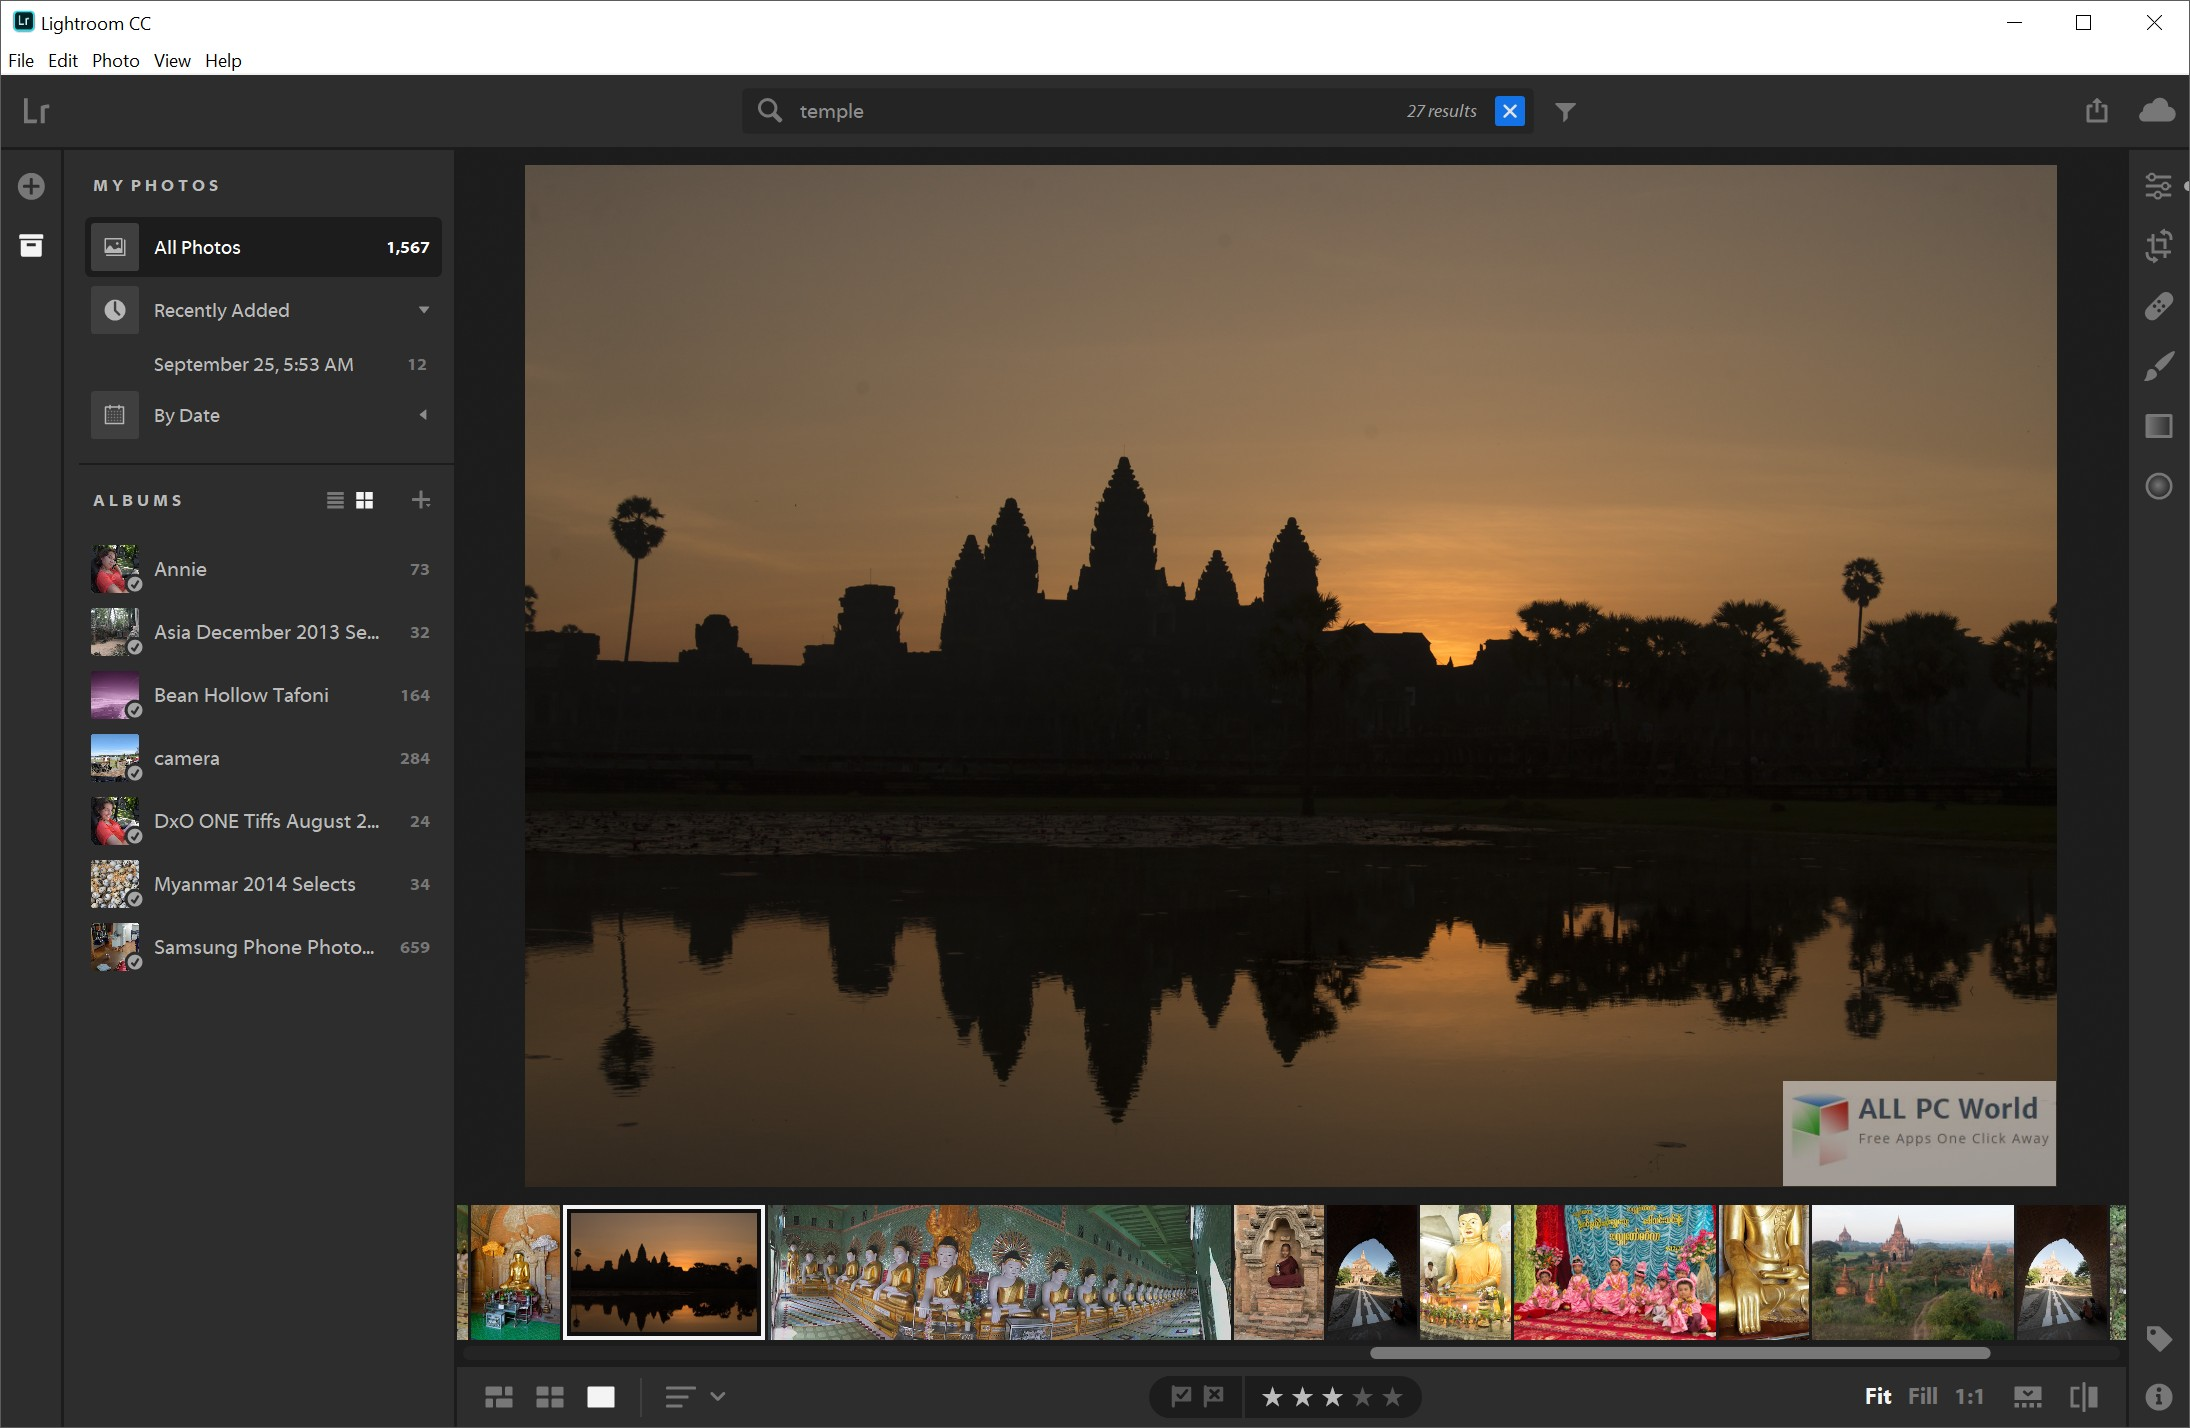 Portable Adobe Photoshop Lightroom CC 1.0 Review